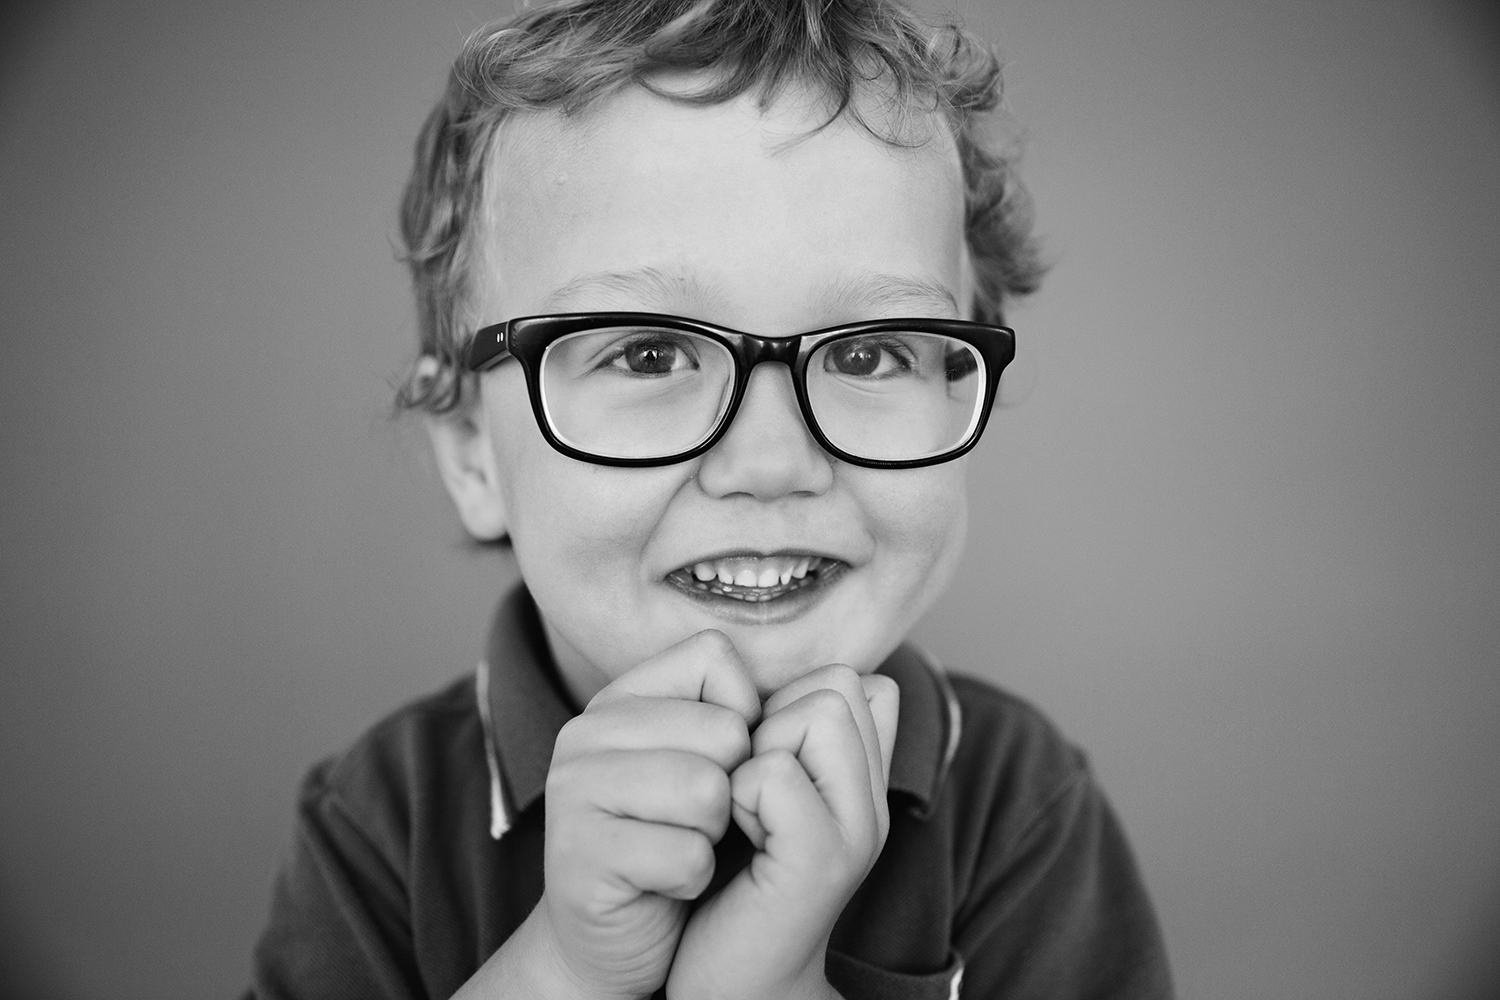 Cute portrait of a boy with glasses by Dana Pugh